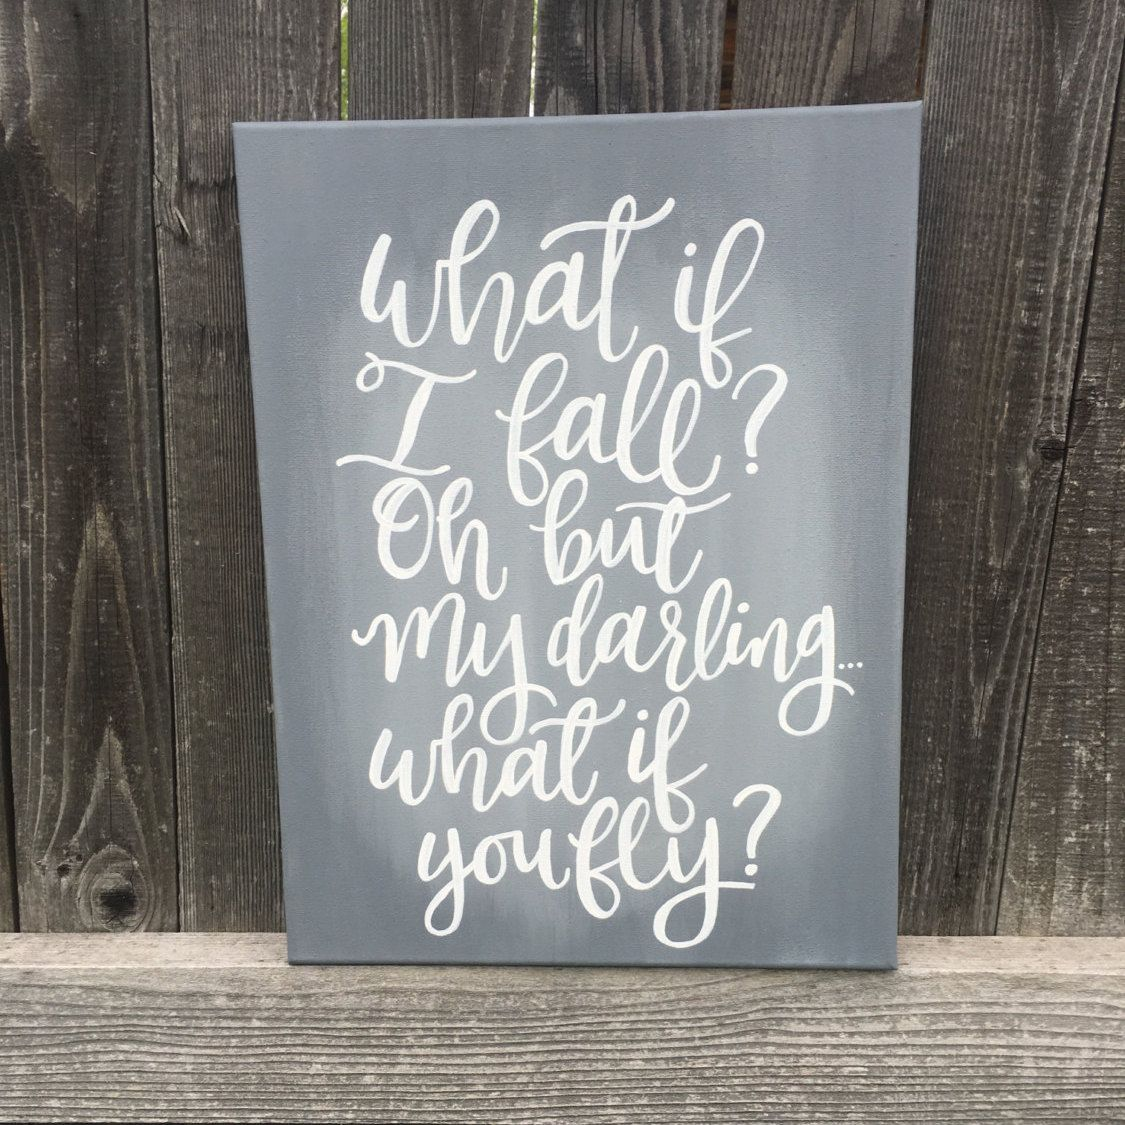 hand lettered quote painting      what if i fall  oh but my